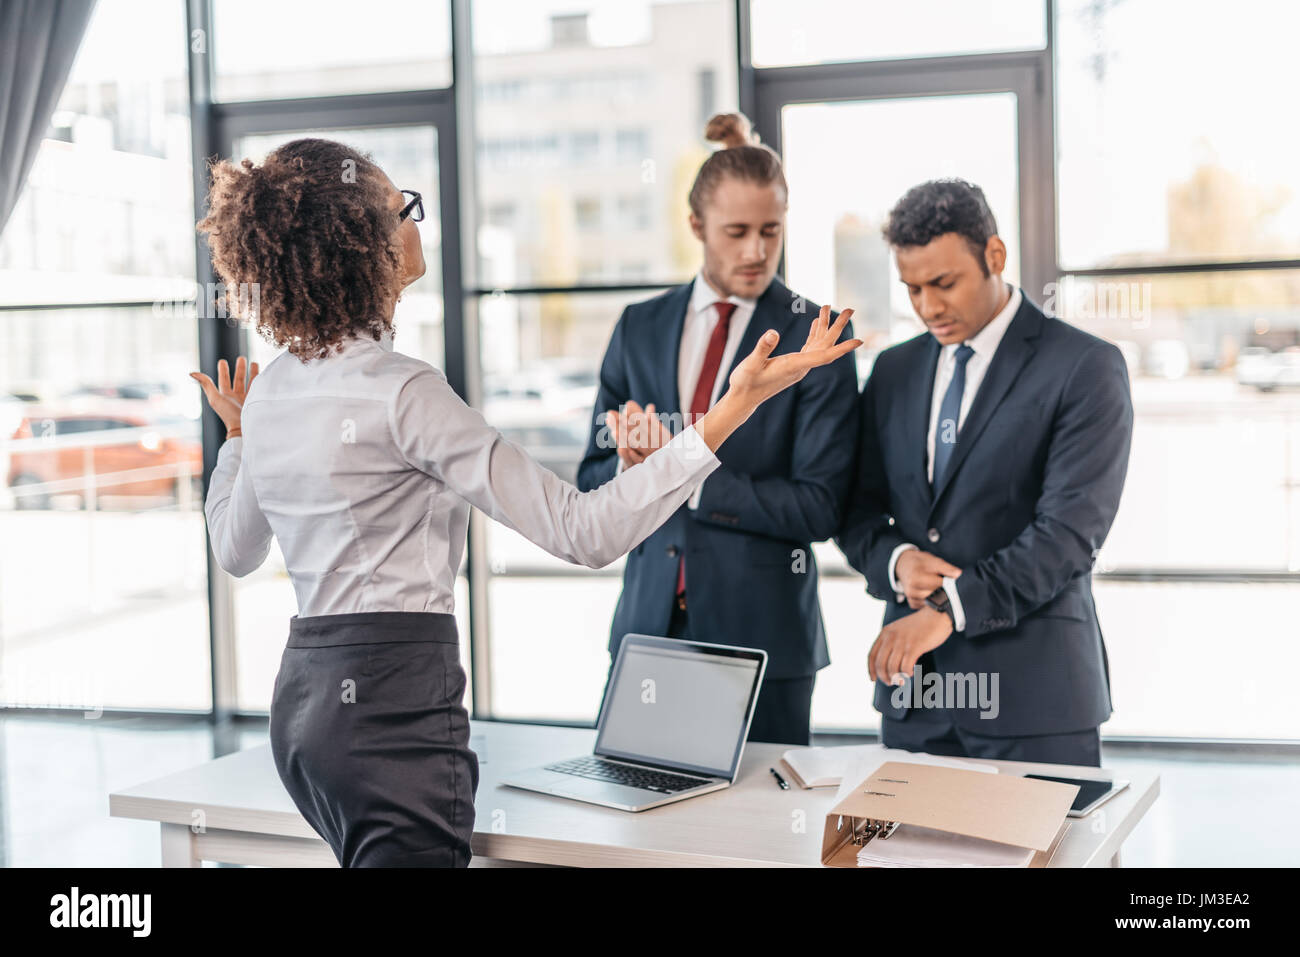 Young businesswoman gesturing and arguing with coworkers in office, business team meeting concept - Stock Image